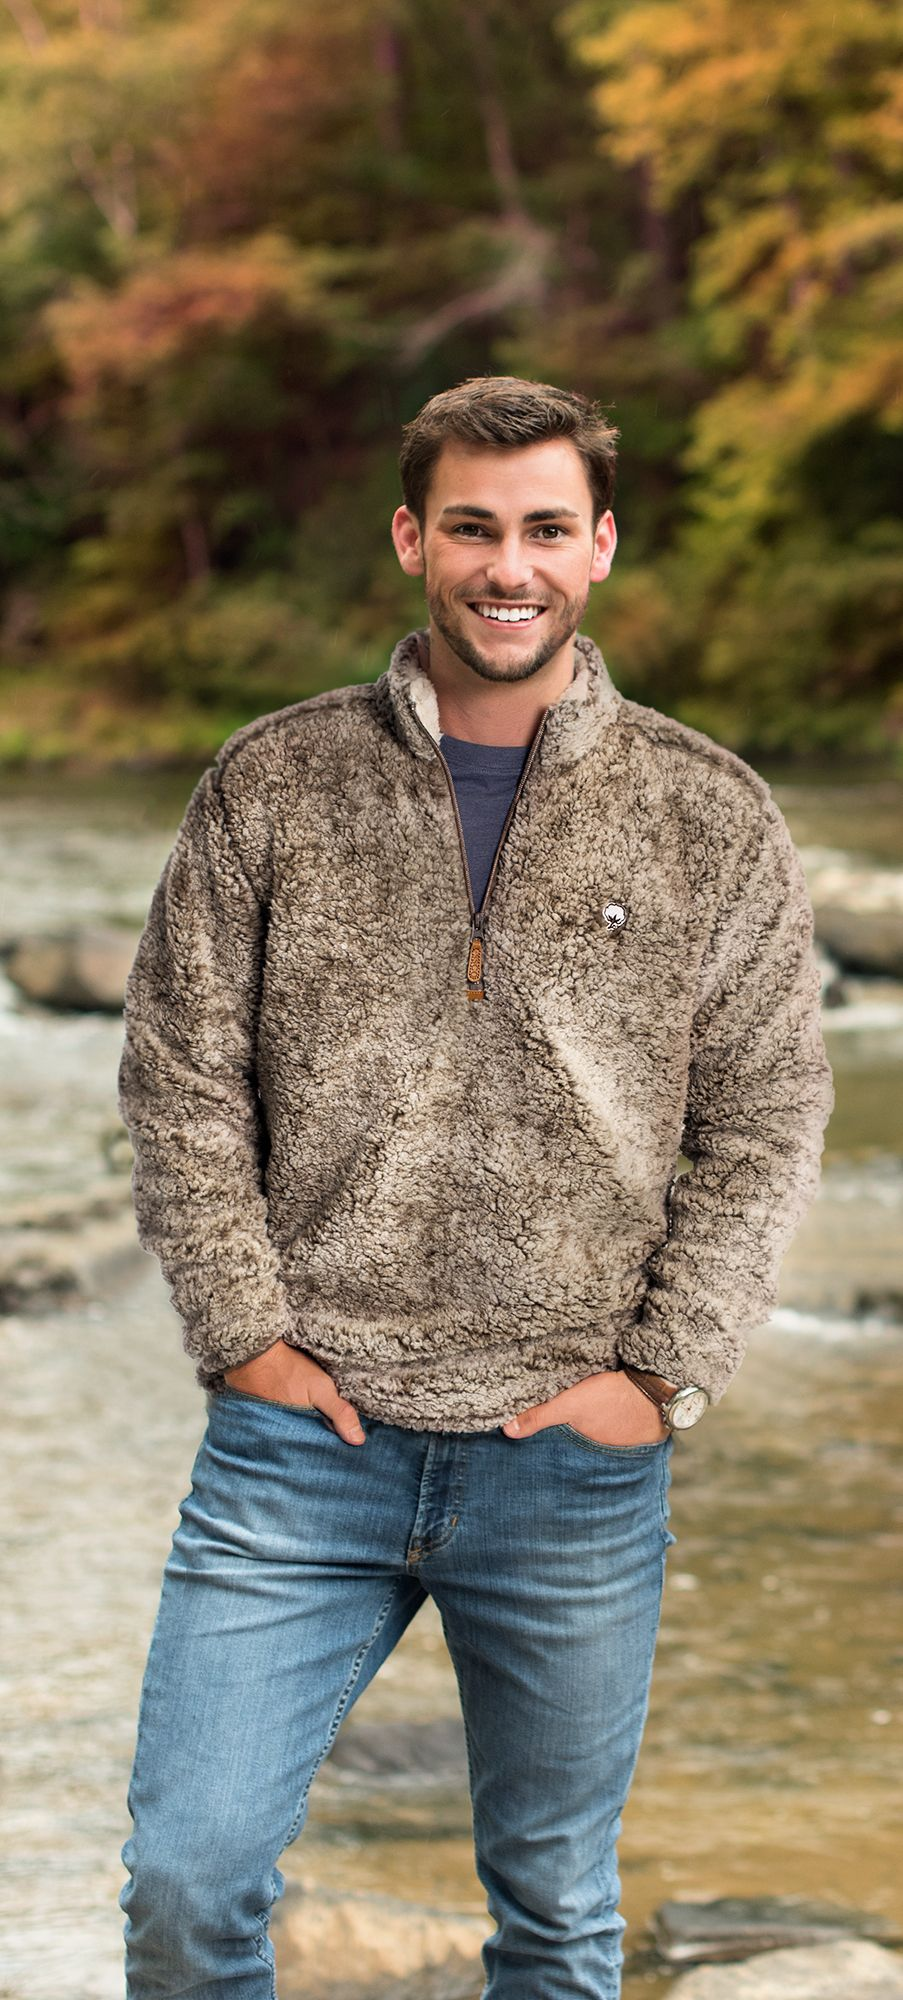 Heather Sherpa Pullover w/ Pockets | Mens fall, Guy outfits and ...